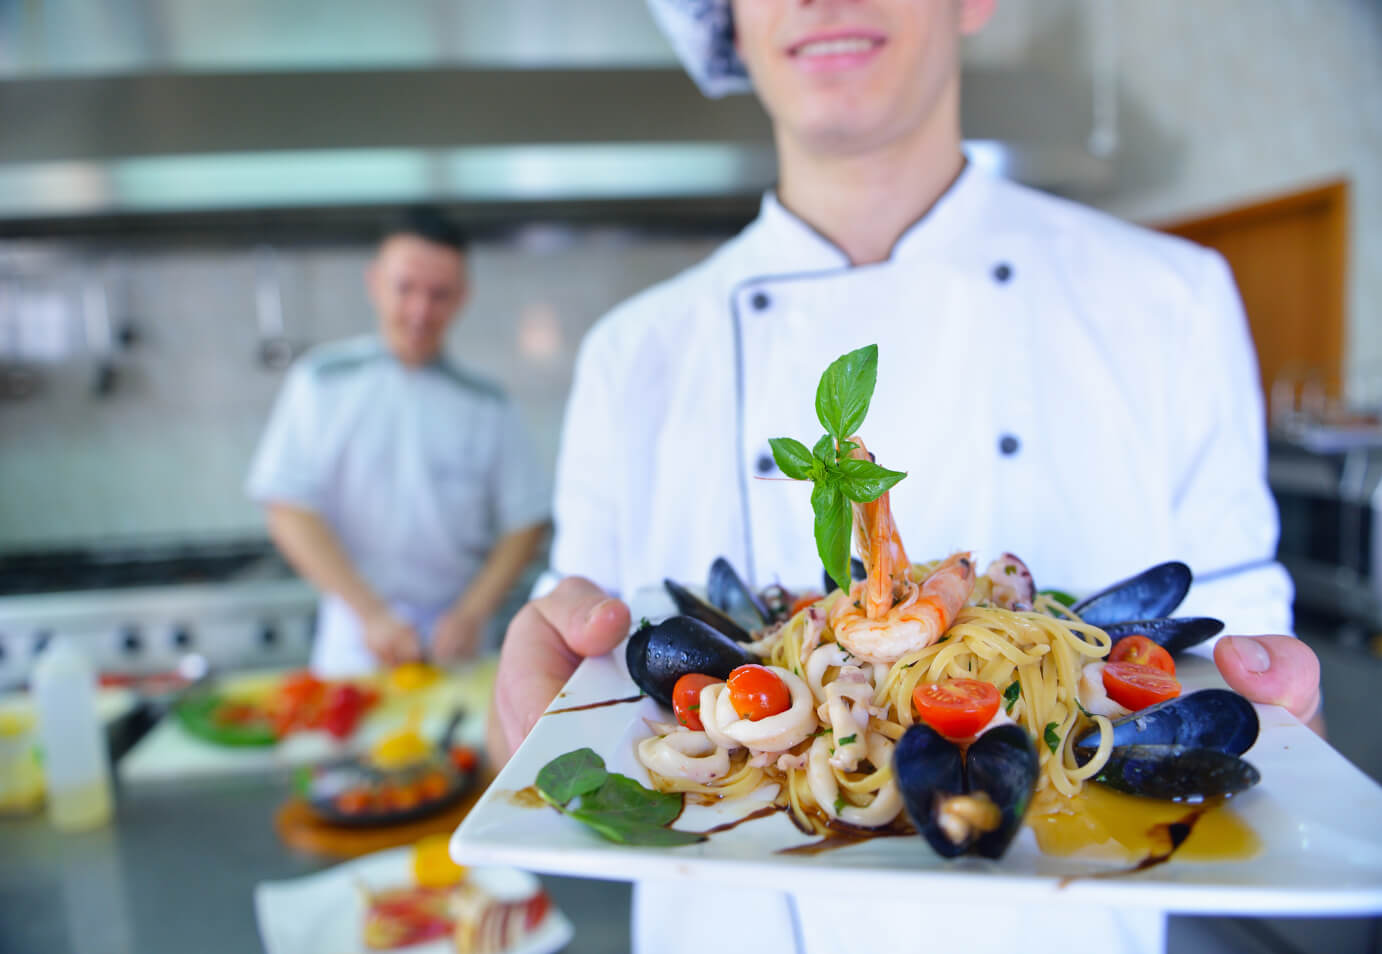 seafood-pasta-chef-shutterstock_223527655-1